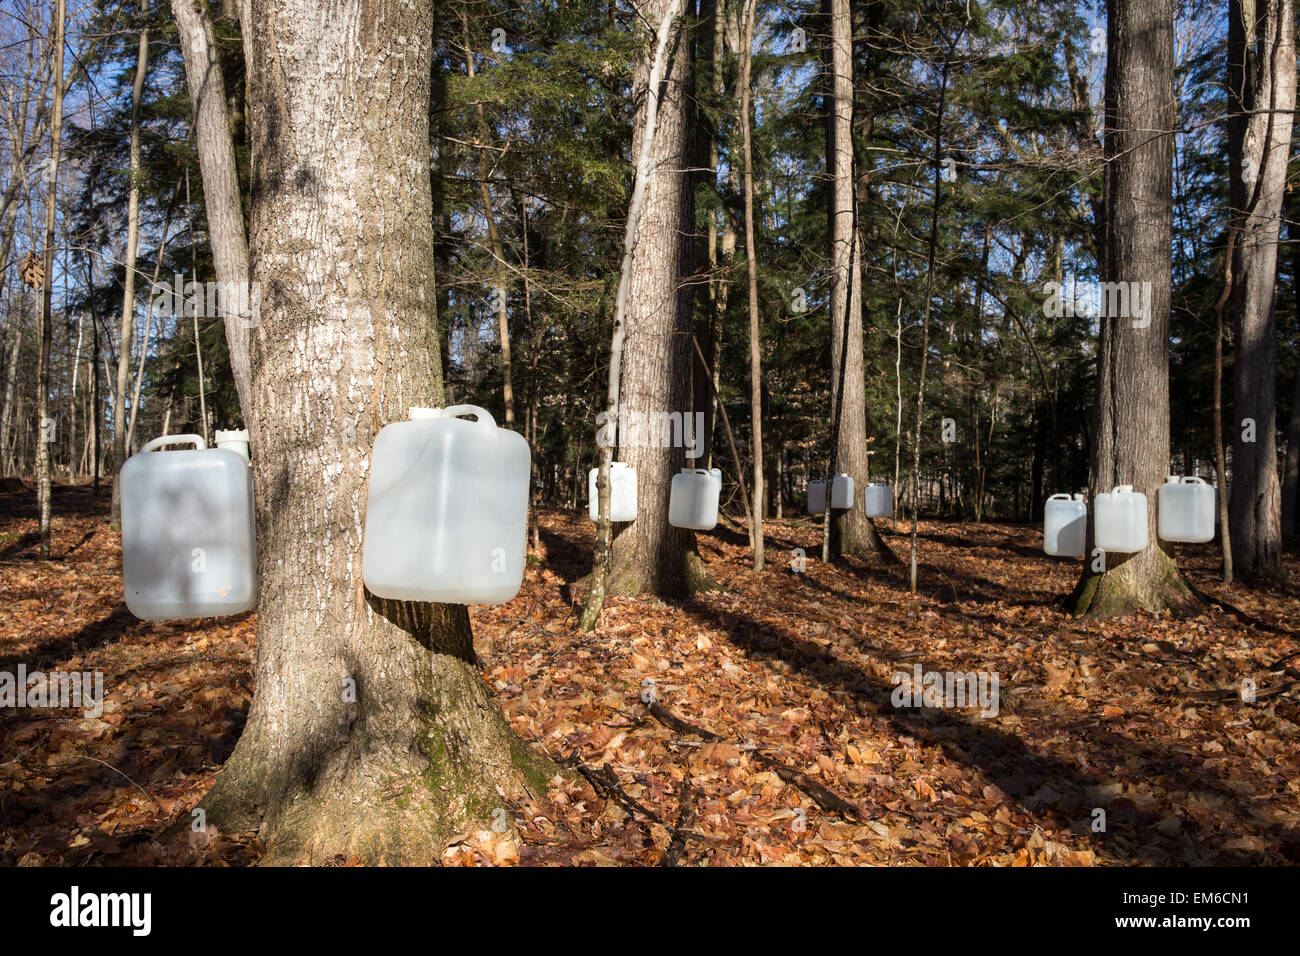 Tapping sugar maple trees for their sap, which will be made into maple syrup.  Early morning light and long shadows. - Stock Image